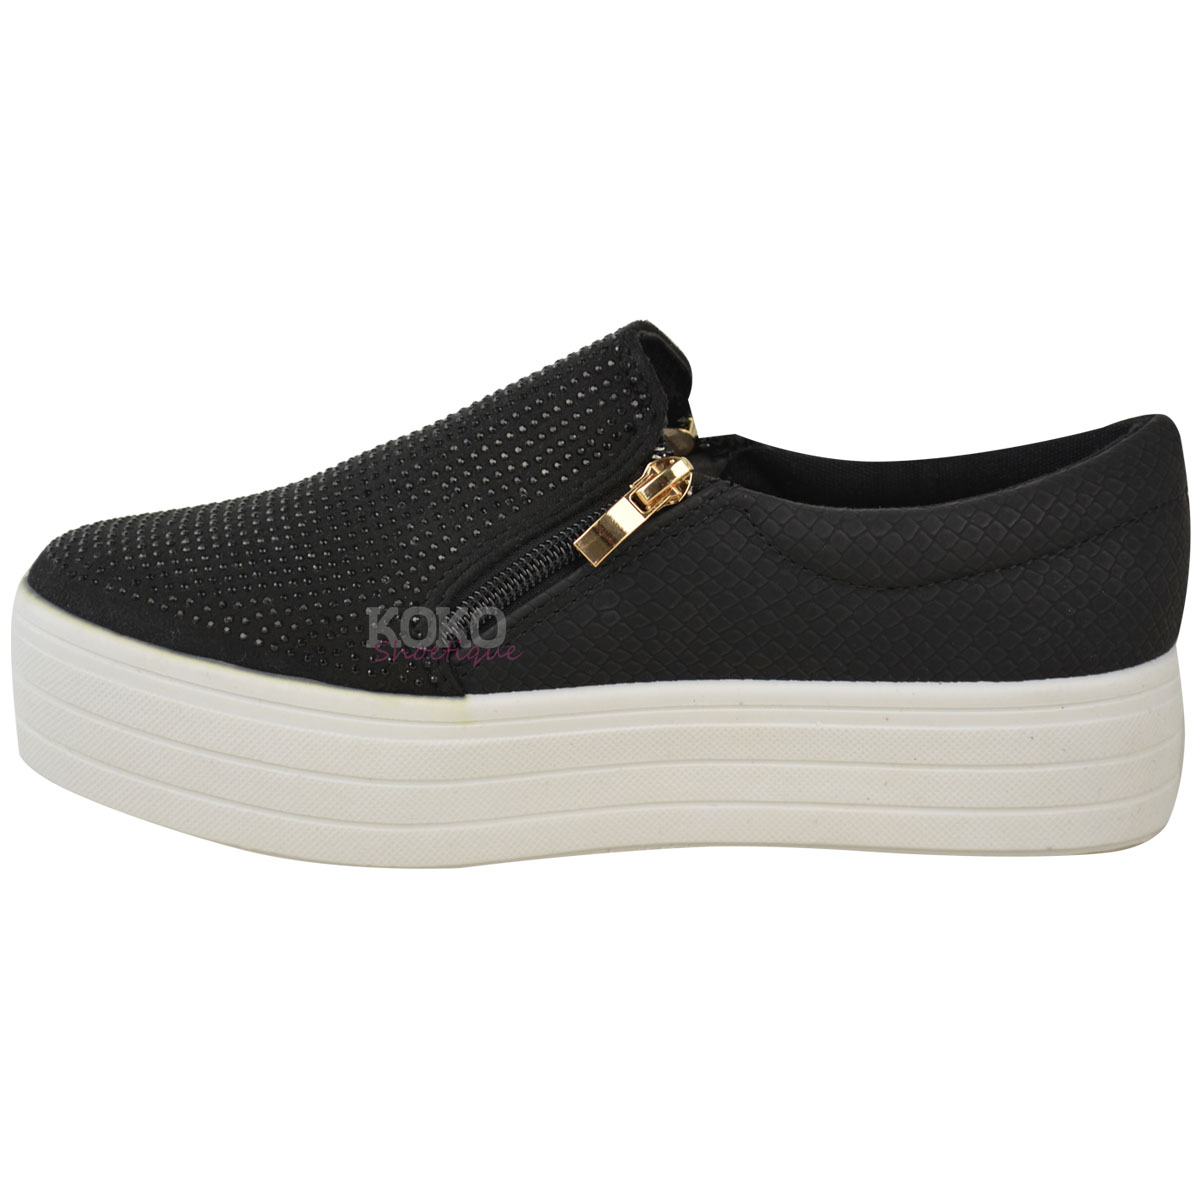 Sneakers Shoes For Womens Amazon